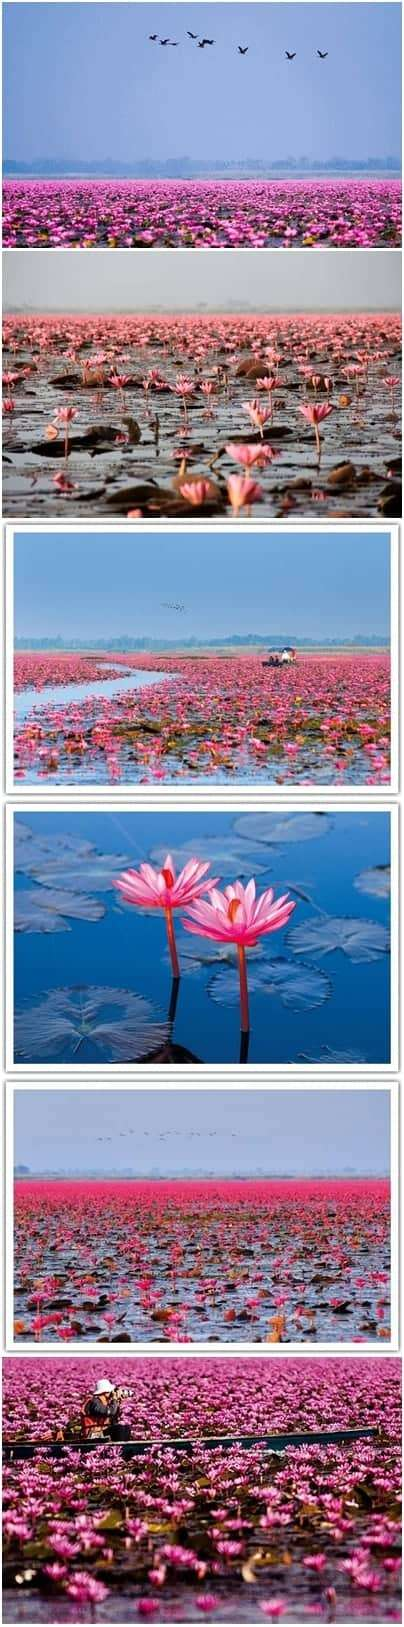 NongHan-Thailand-Red-Lotus-Lake